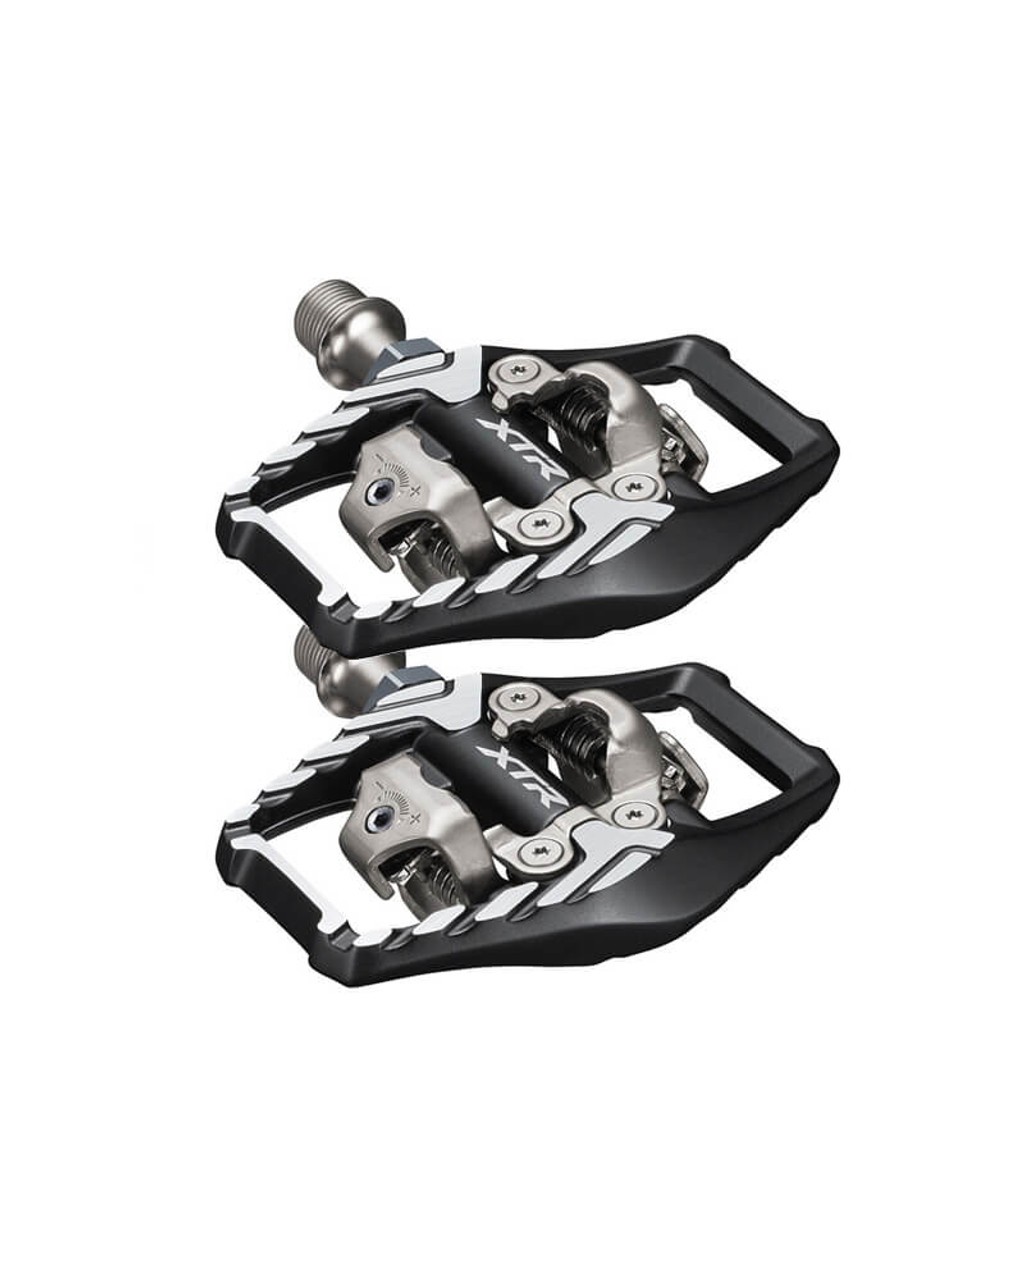 Mountain Bike Road Bicycle Clipless Pedals For Shimano SPD Deore XT XTR SPD-SL